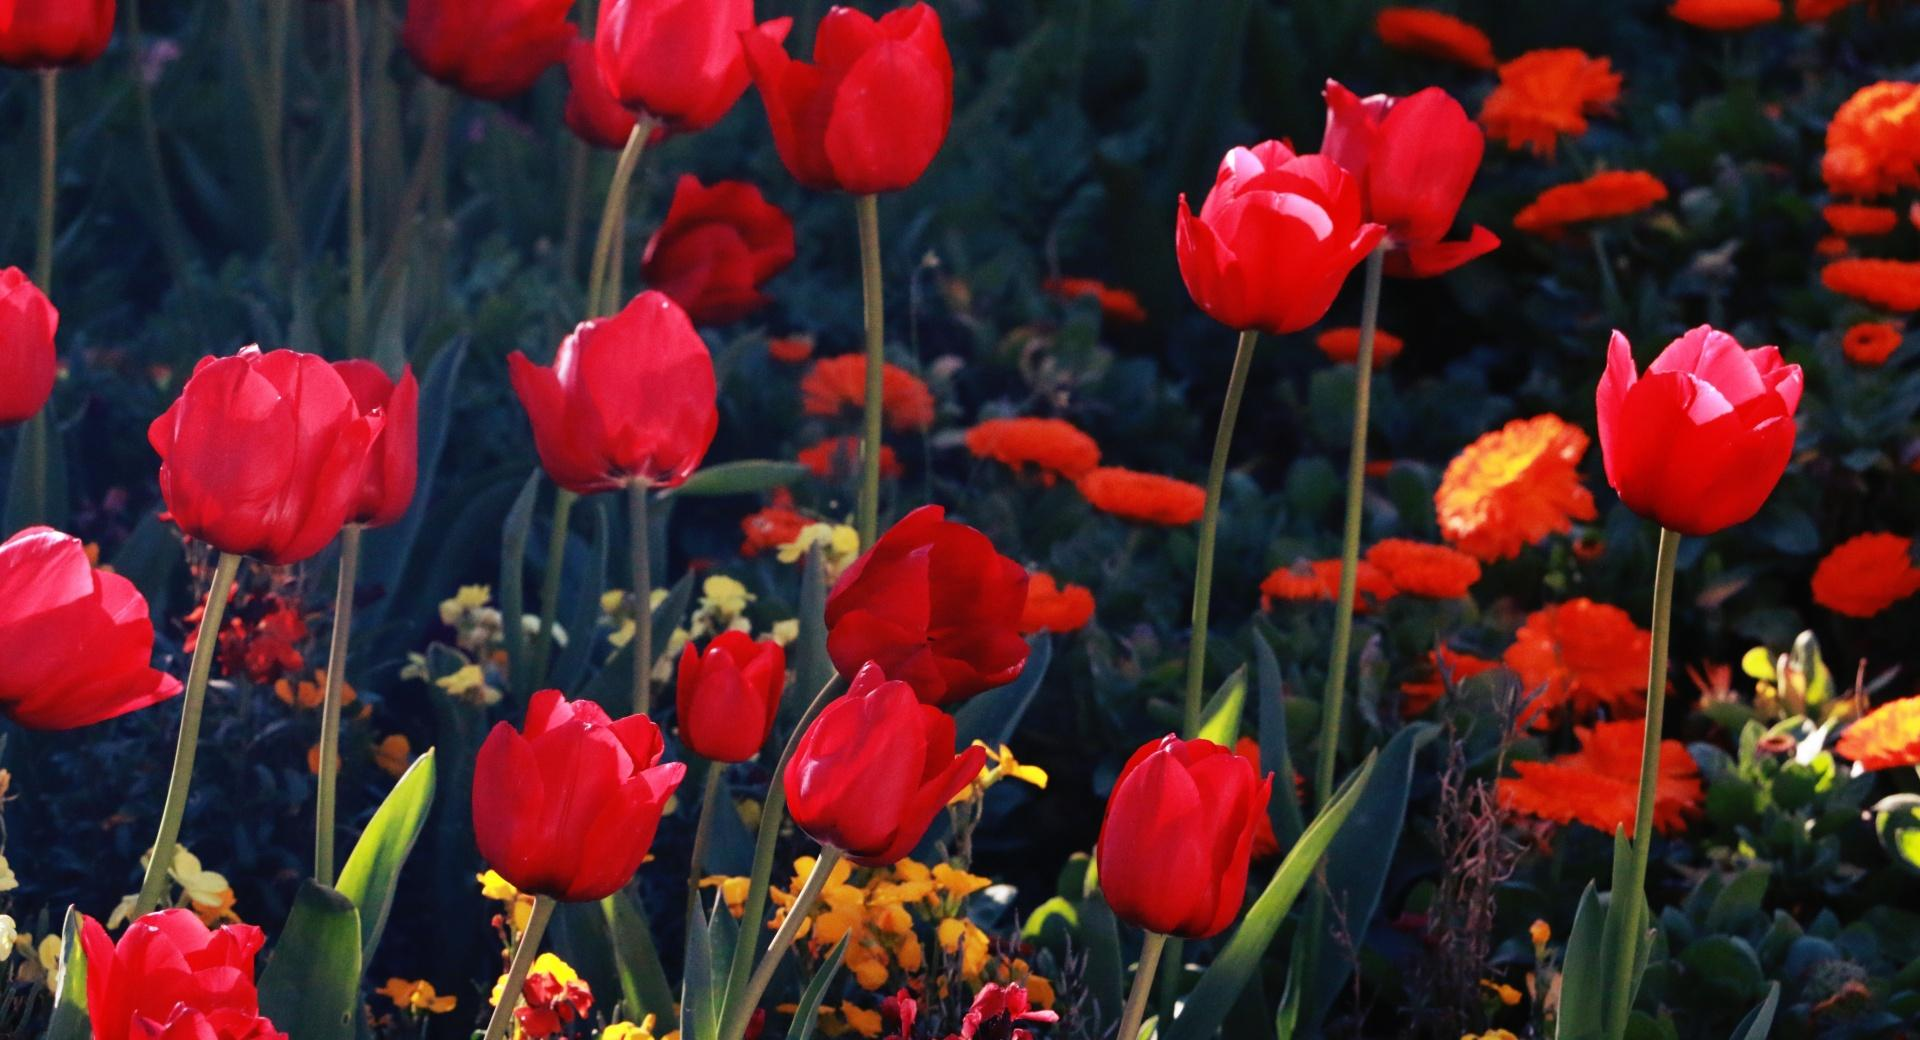 Tulips, Red Tulips wallpapers HD quality